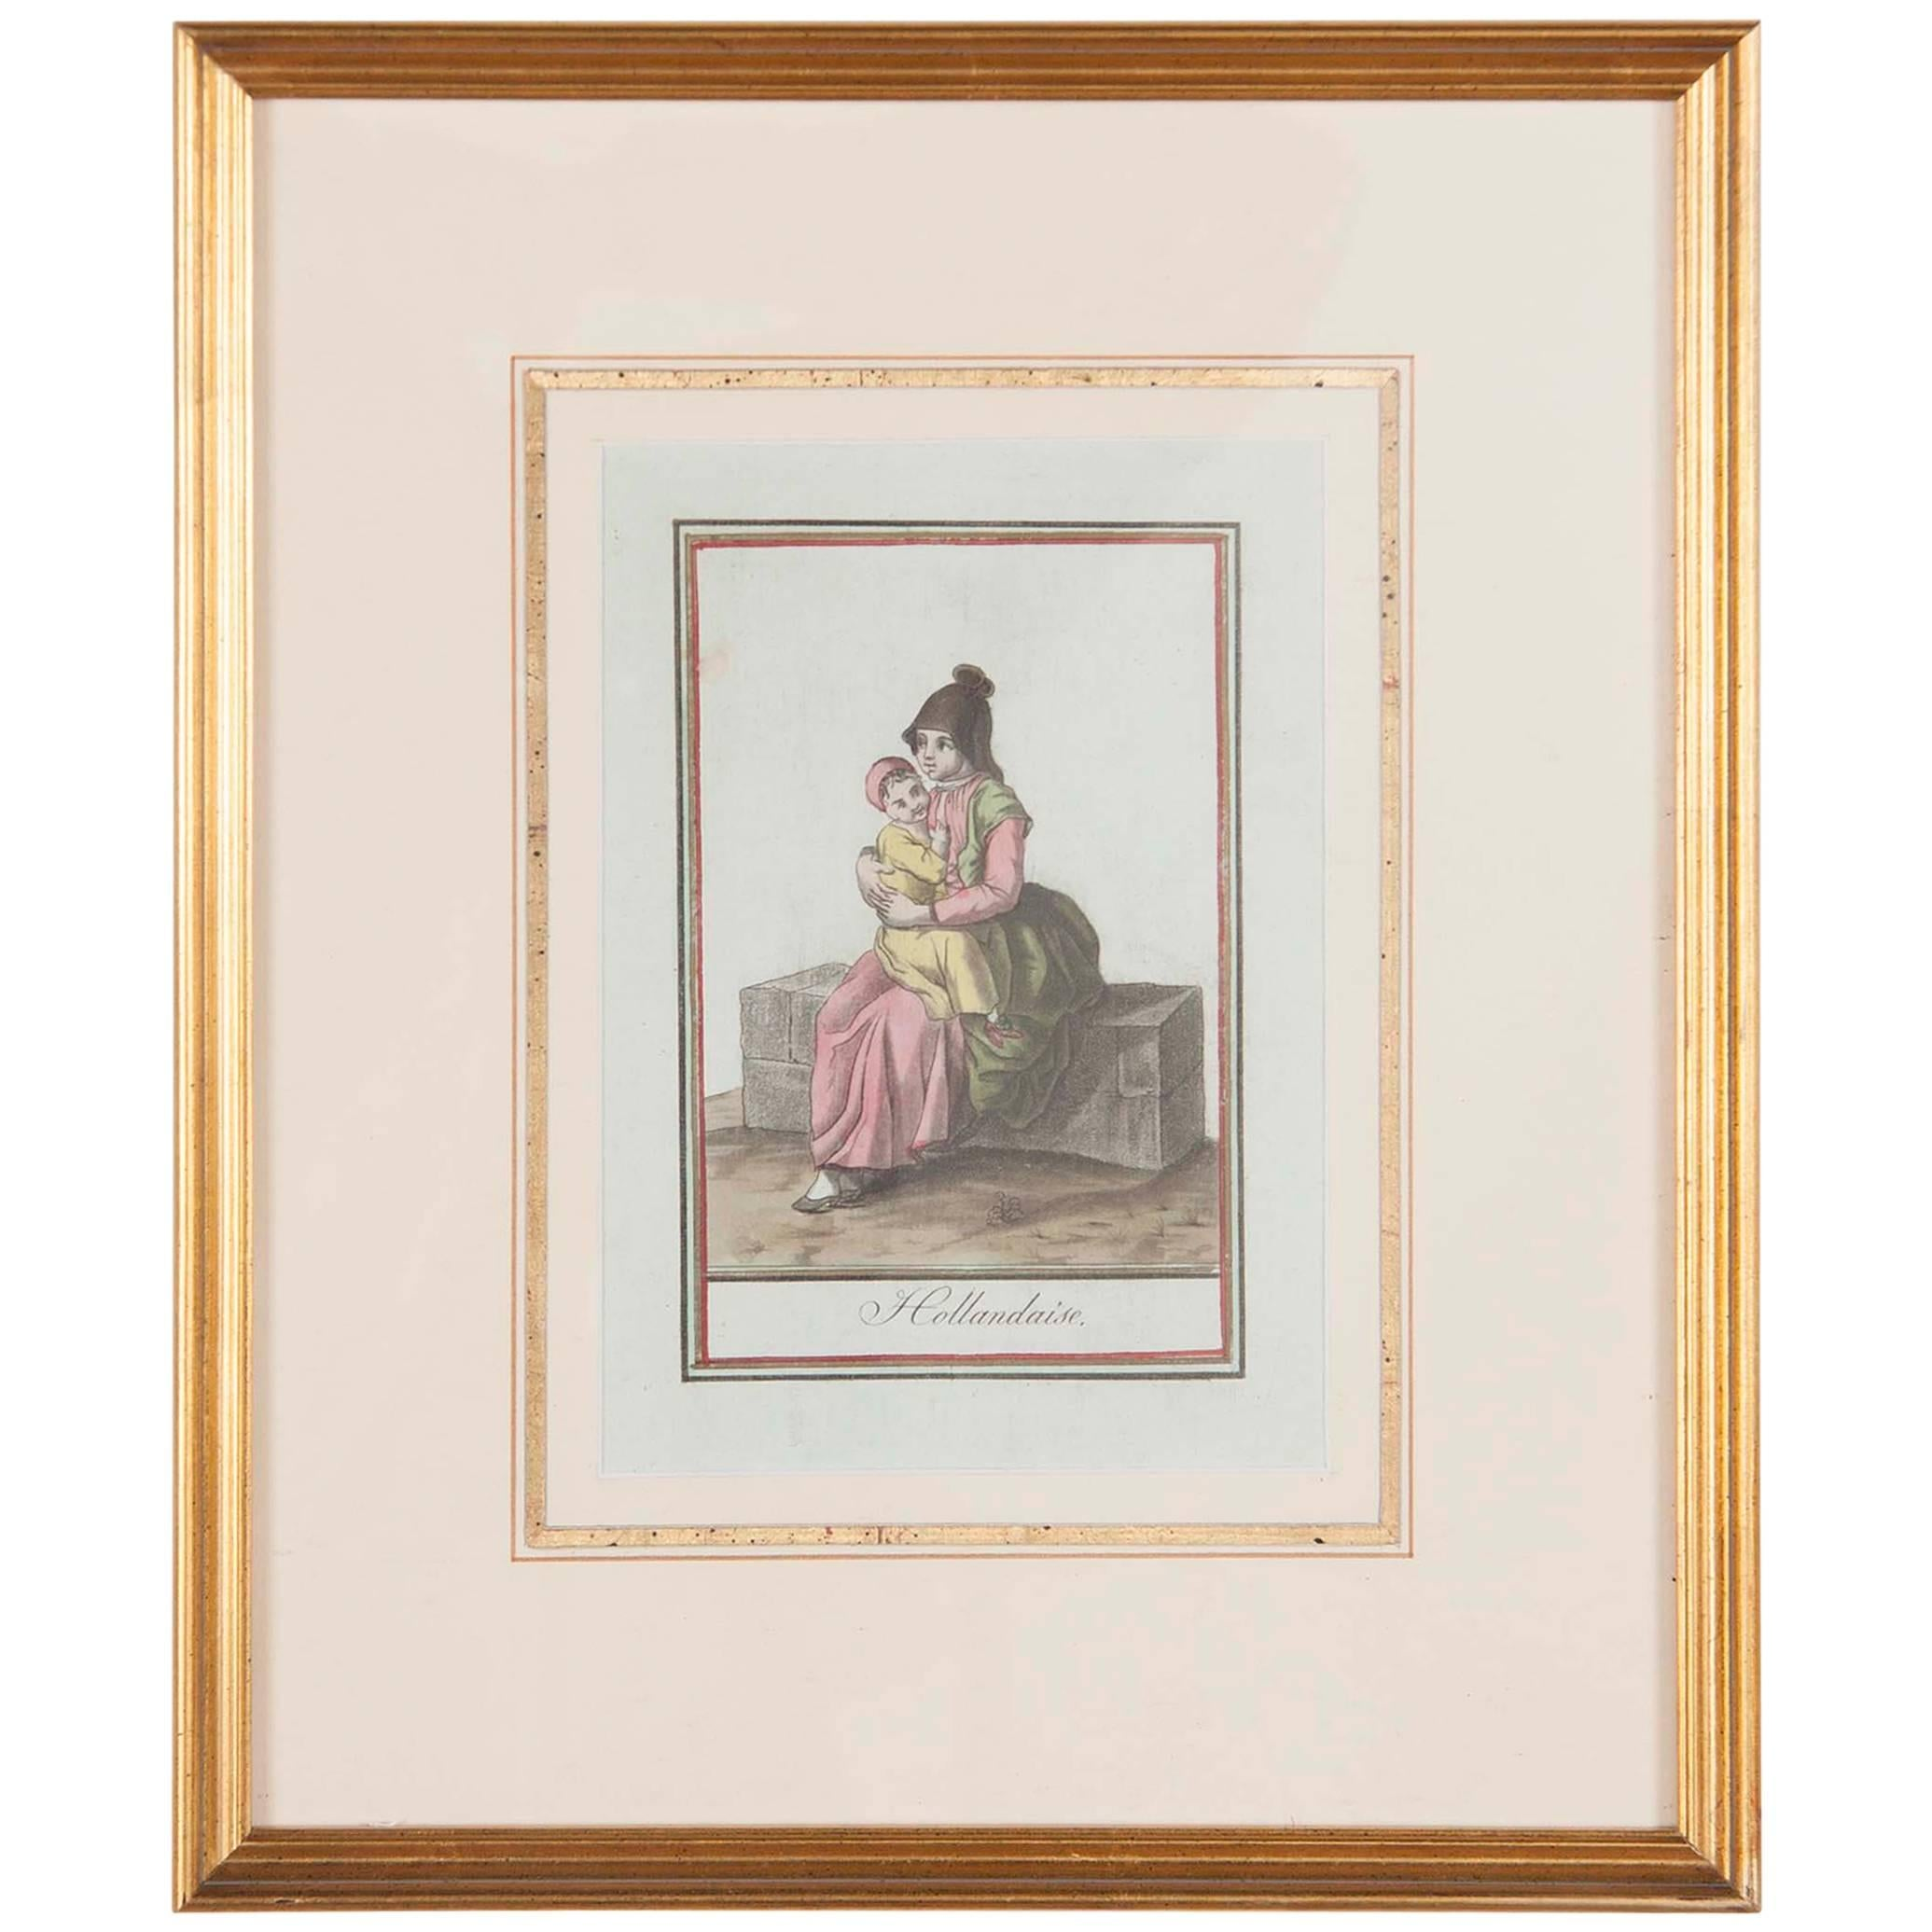 18th Century French Hand Colored Engraving of a Dutch Mother and Child